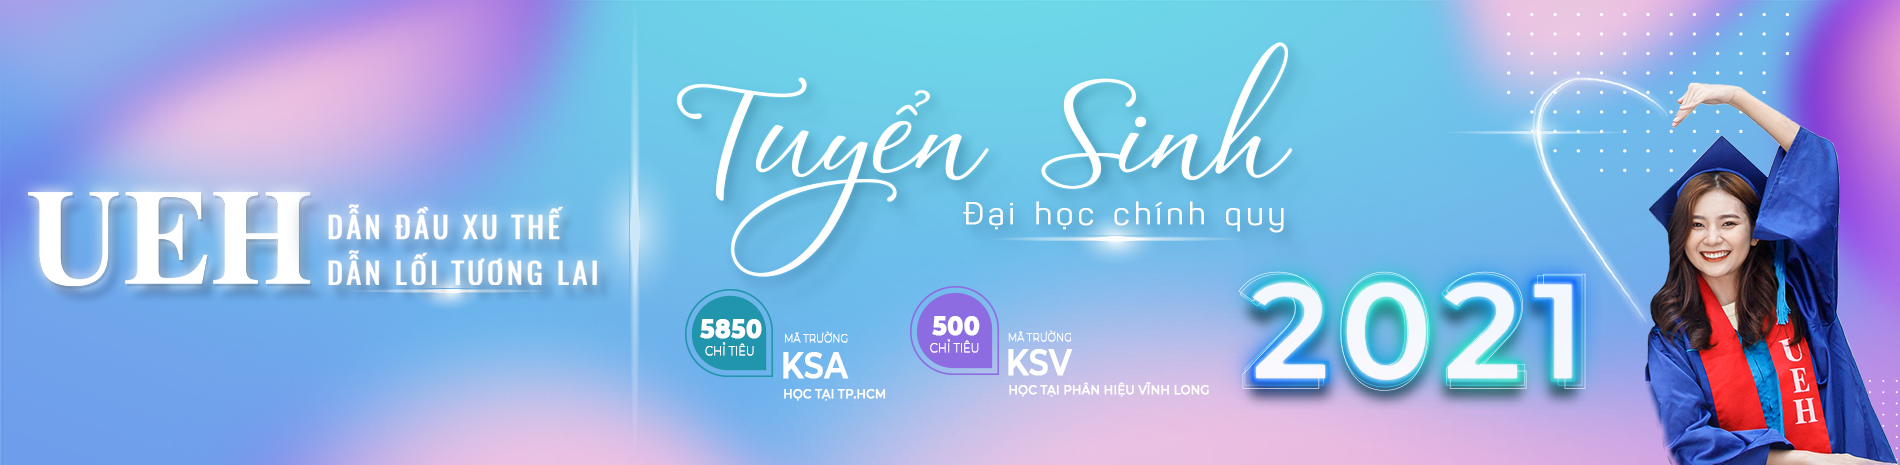 banner landing page_chung_PC